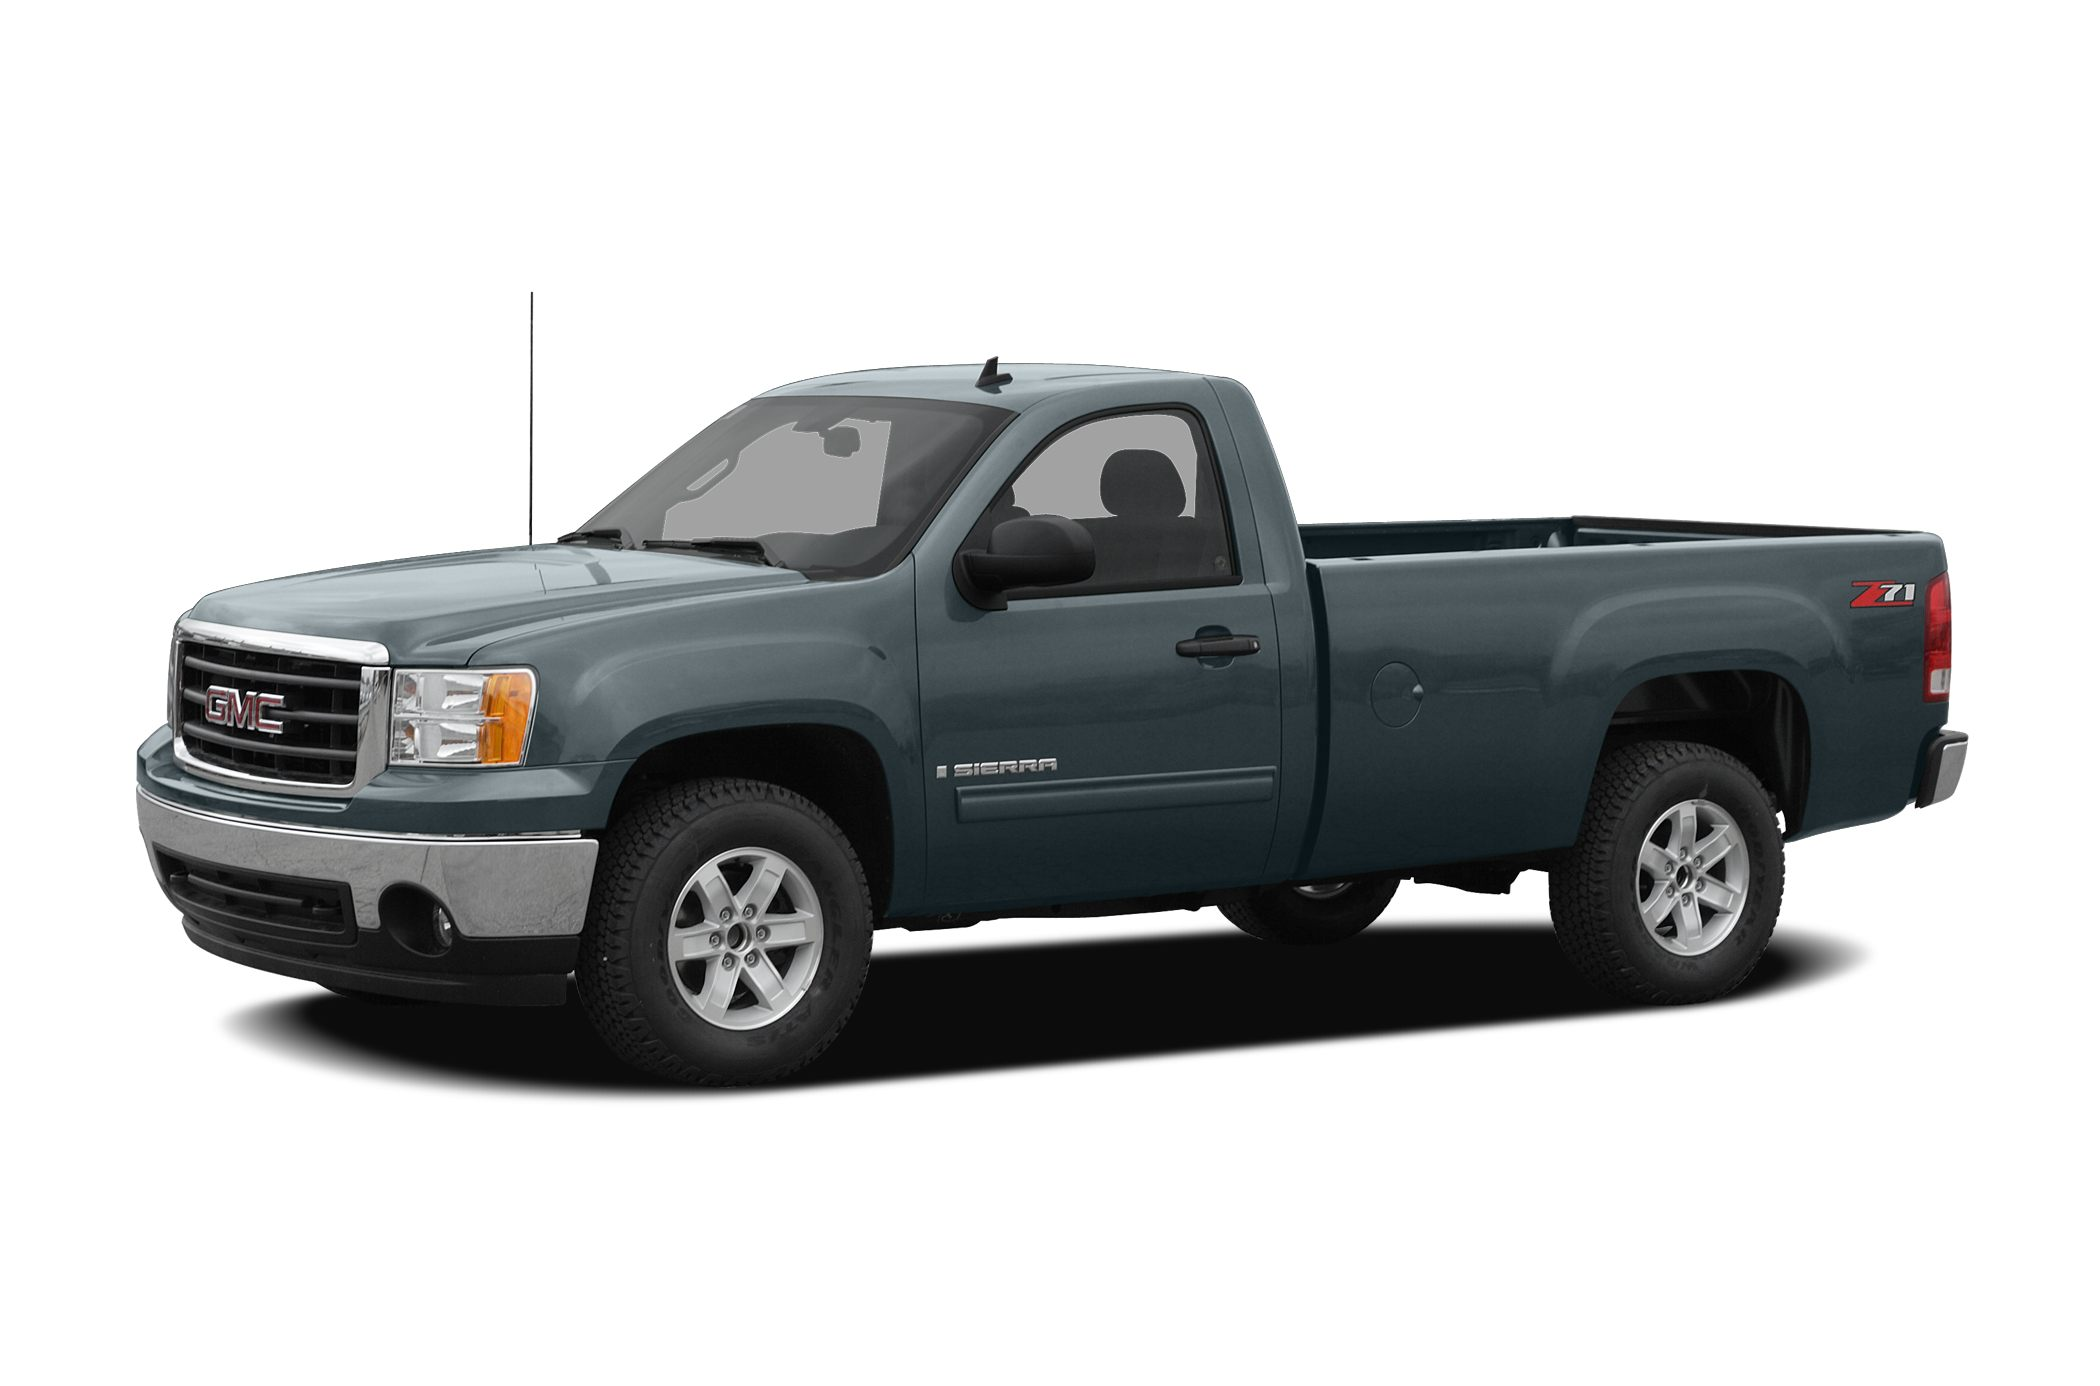 2008 GMC Sierra 1500 WT ITS OUR 50TH ANNIVERSARY HERE AT MARTYS AND TO CELEBRATE WERE OFFERING T